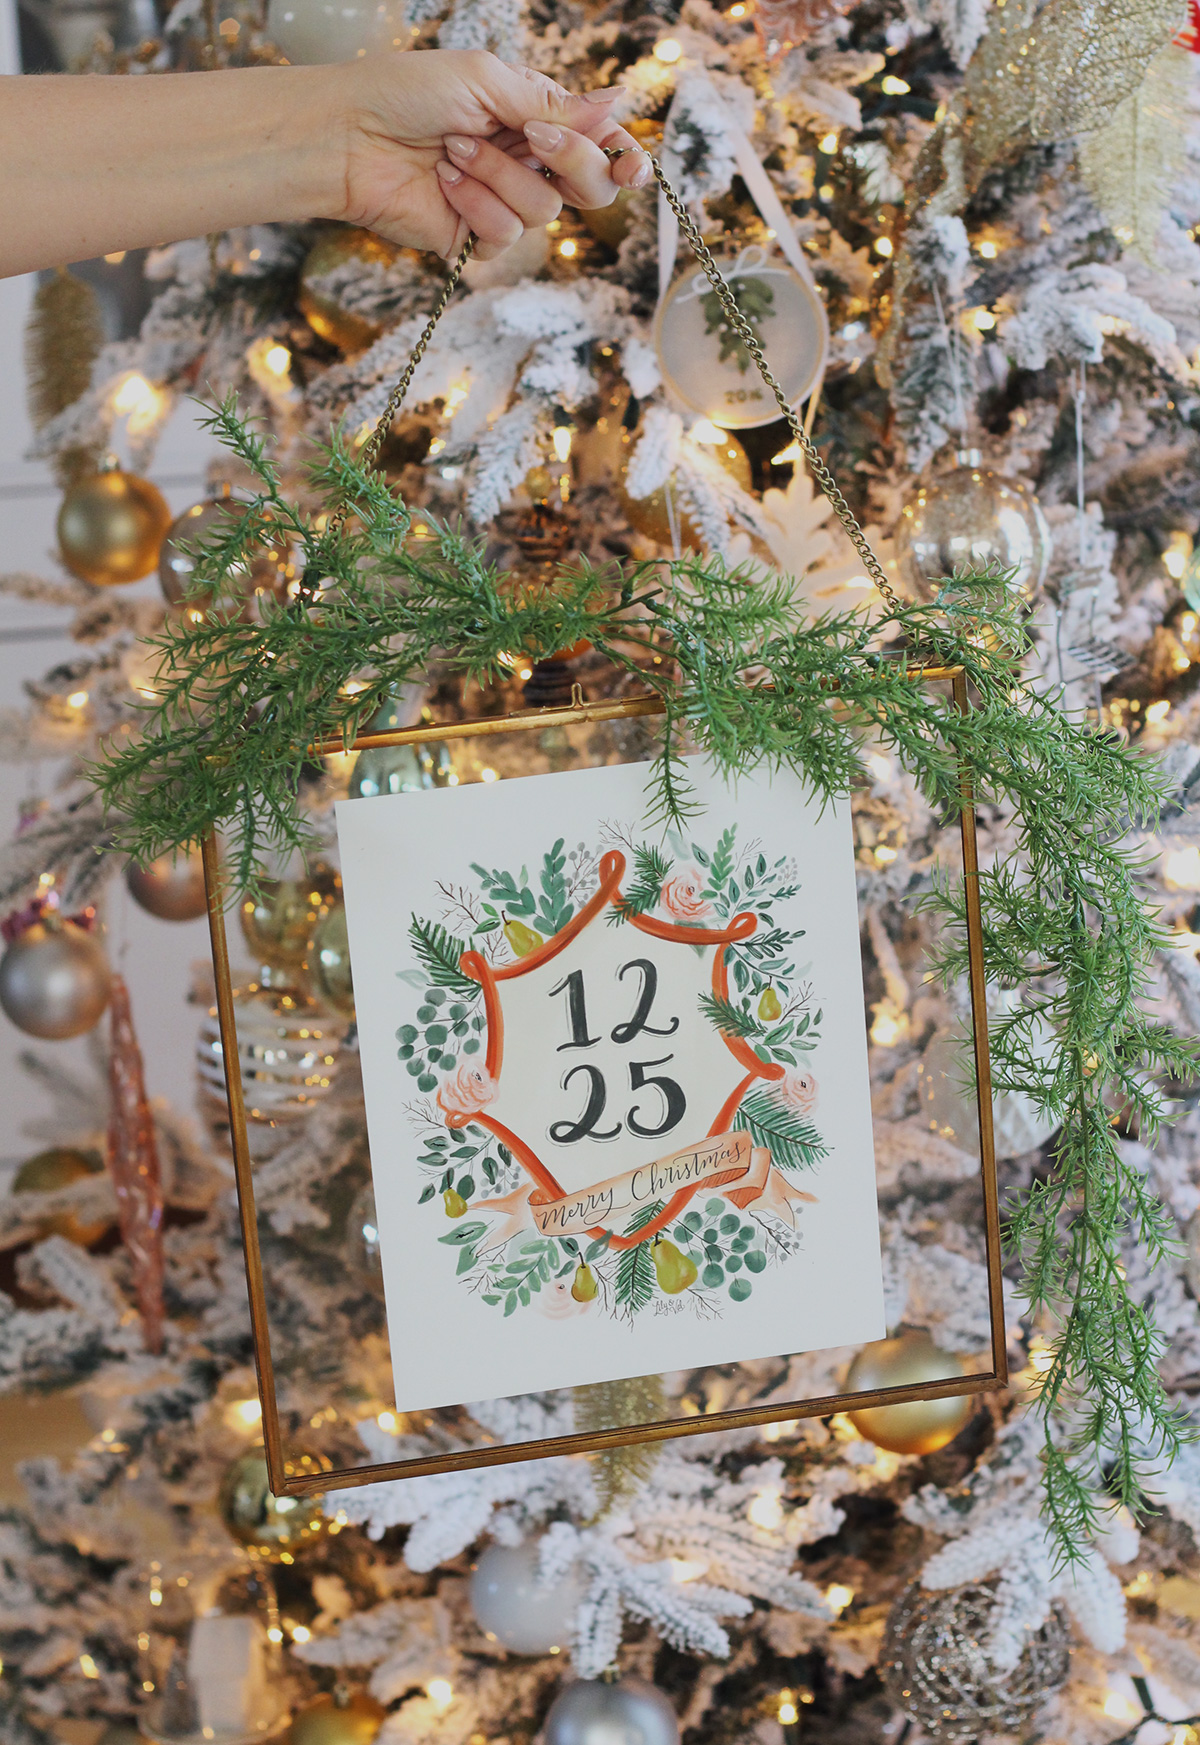 How to use a Hearth & Hand™ brass frame from Target to make this Holiday Wall Hanging